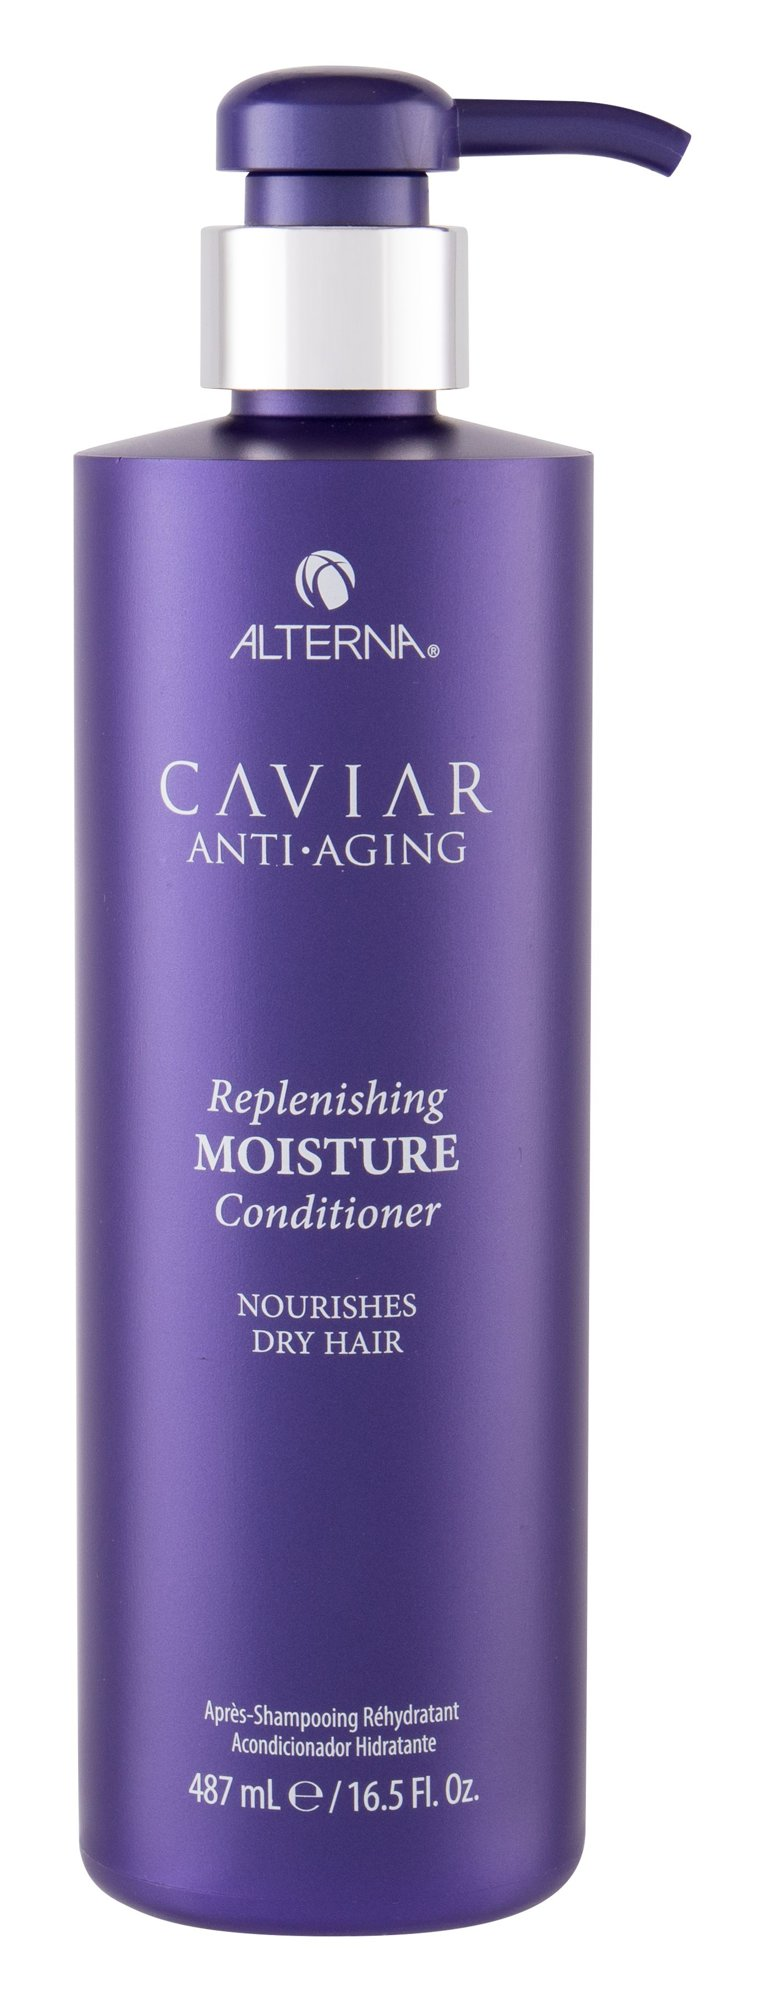 Alterna Caviar Anti-Aging Conditioner 487ml